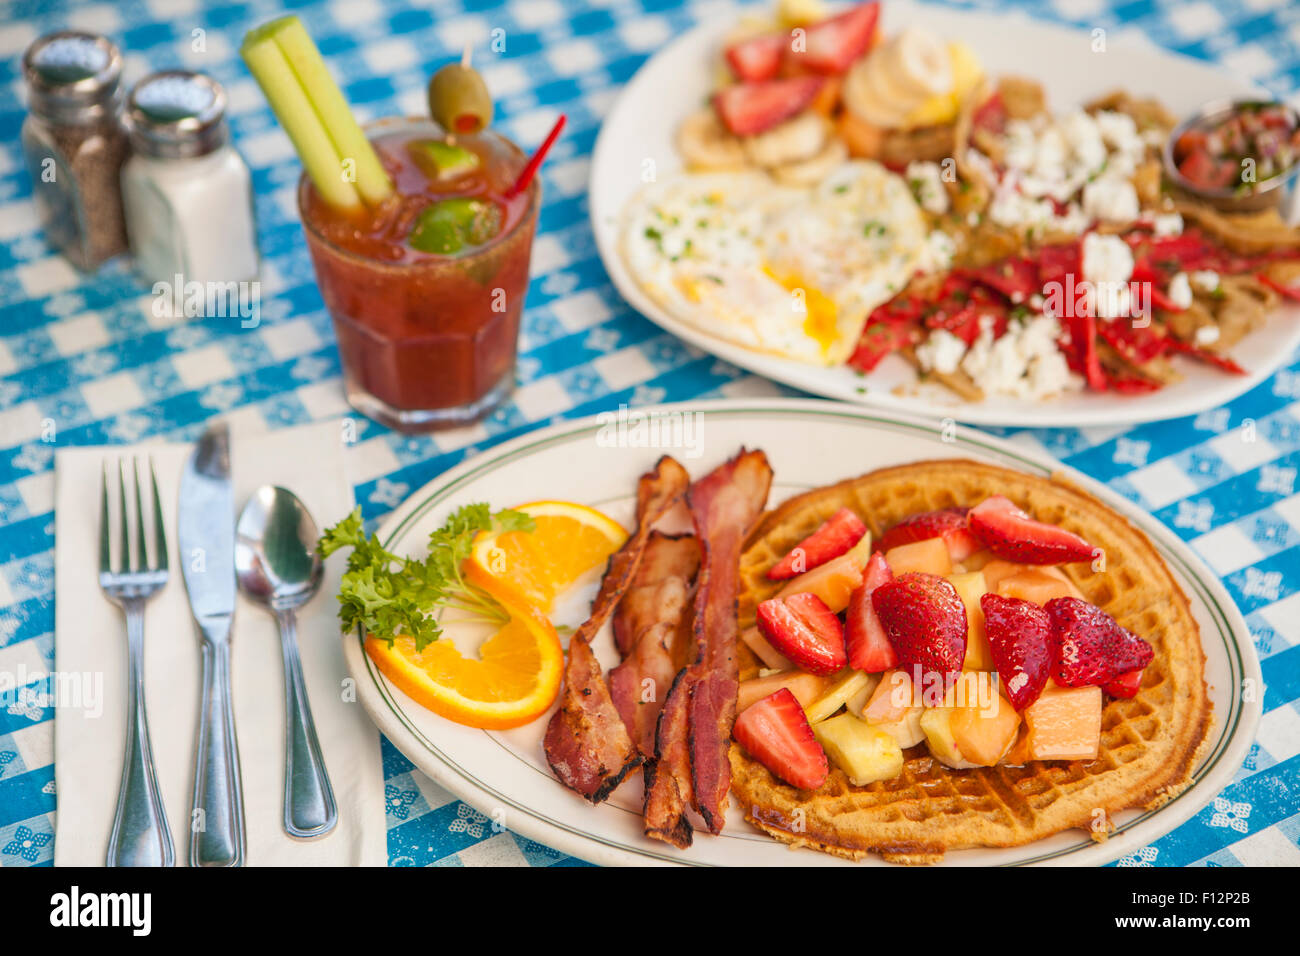 O.J.Waffle with bacon, Huevos Paradiso and a Bloody Mary, The Paradise Cafe, Santa Barbara, California - Stock Image